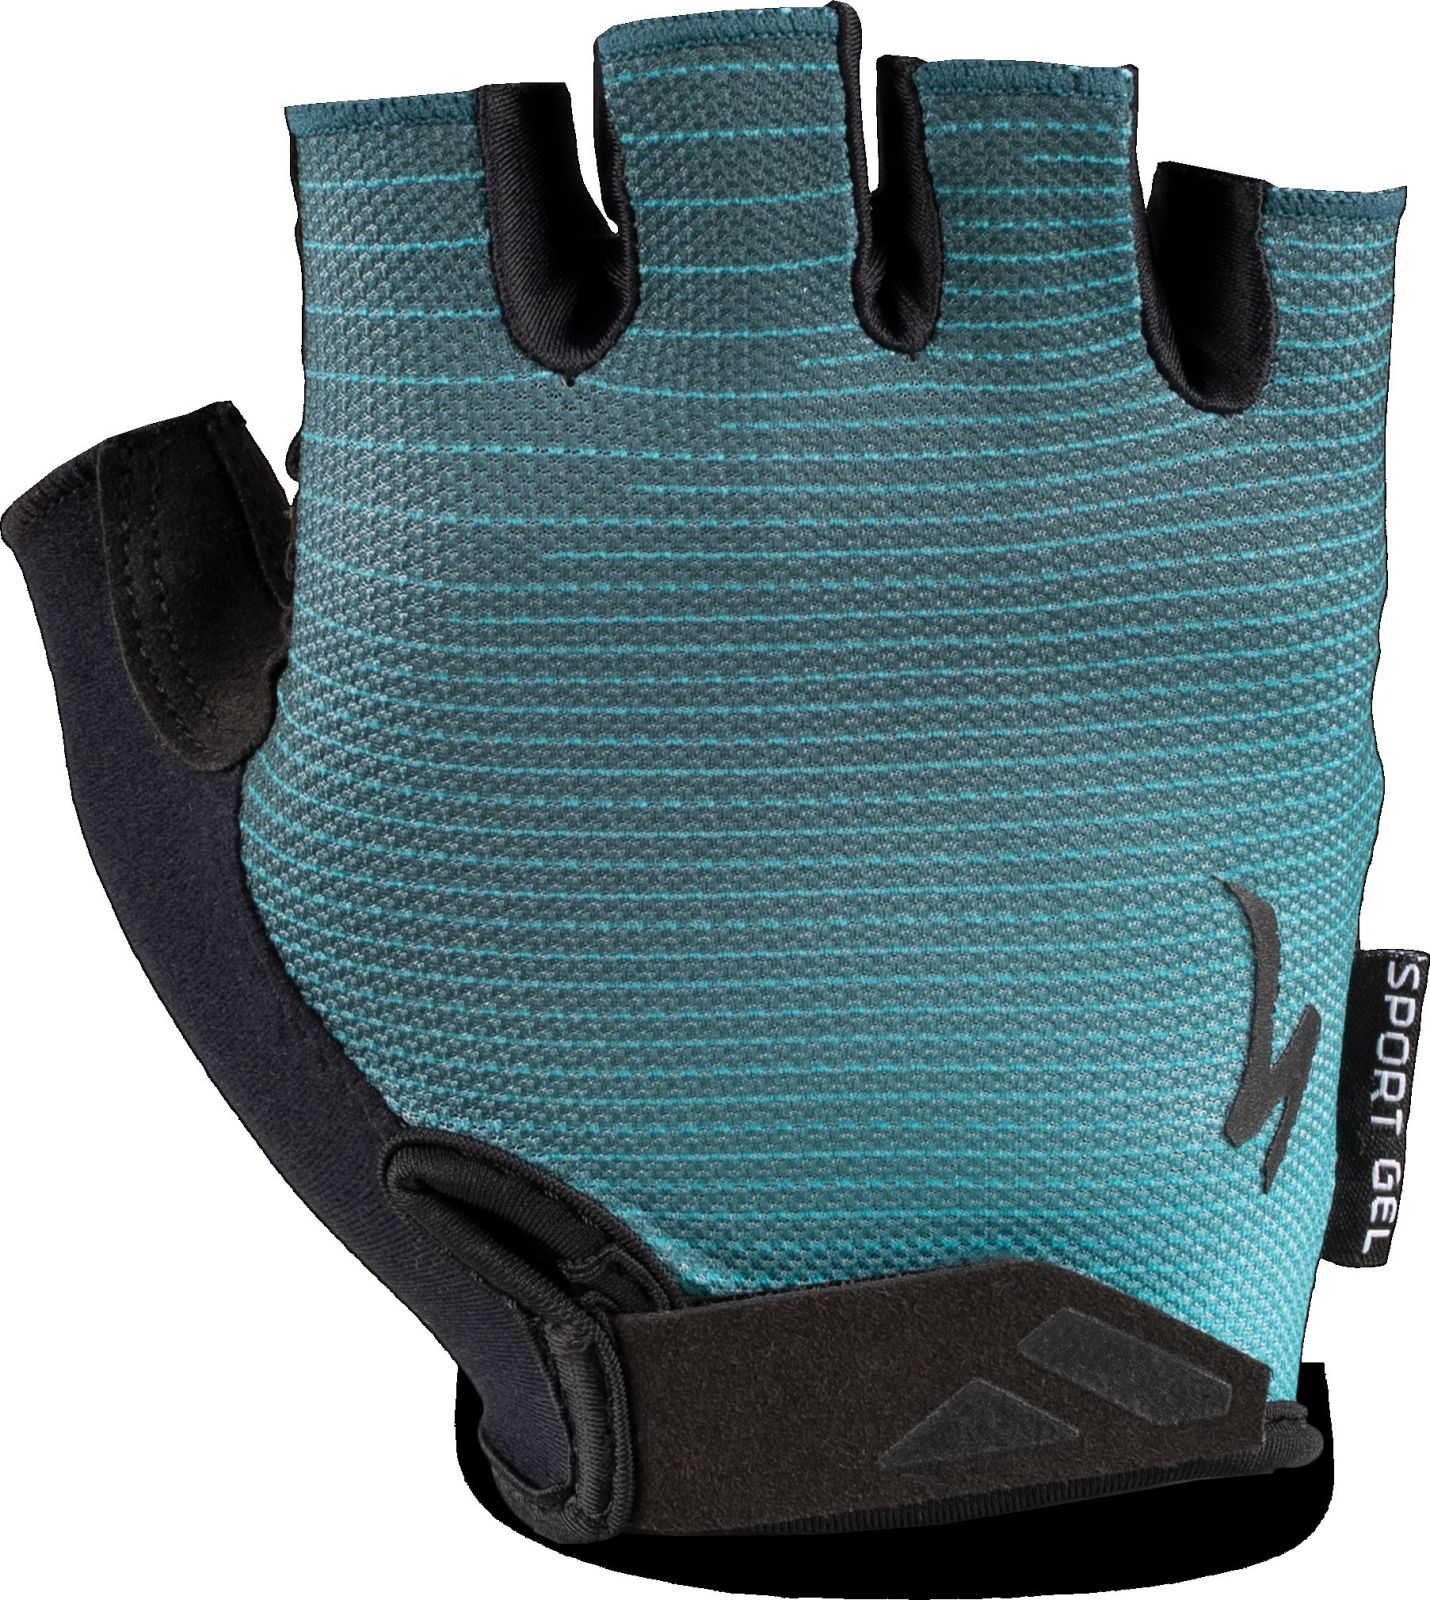 Specialized BG Sport Gel Glove SF - aqua/cast blue arrow M